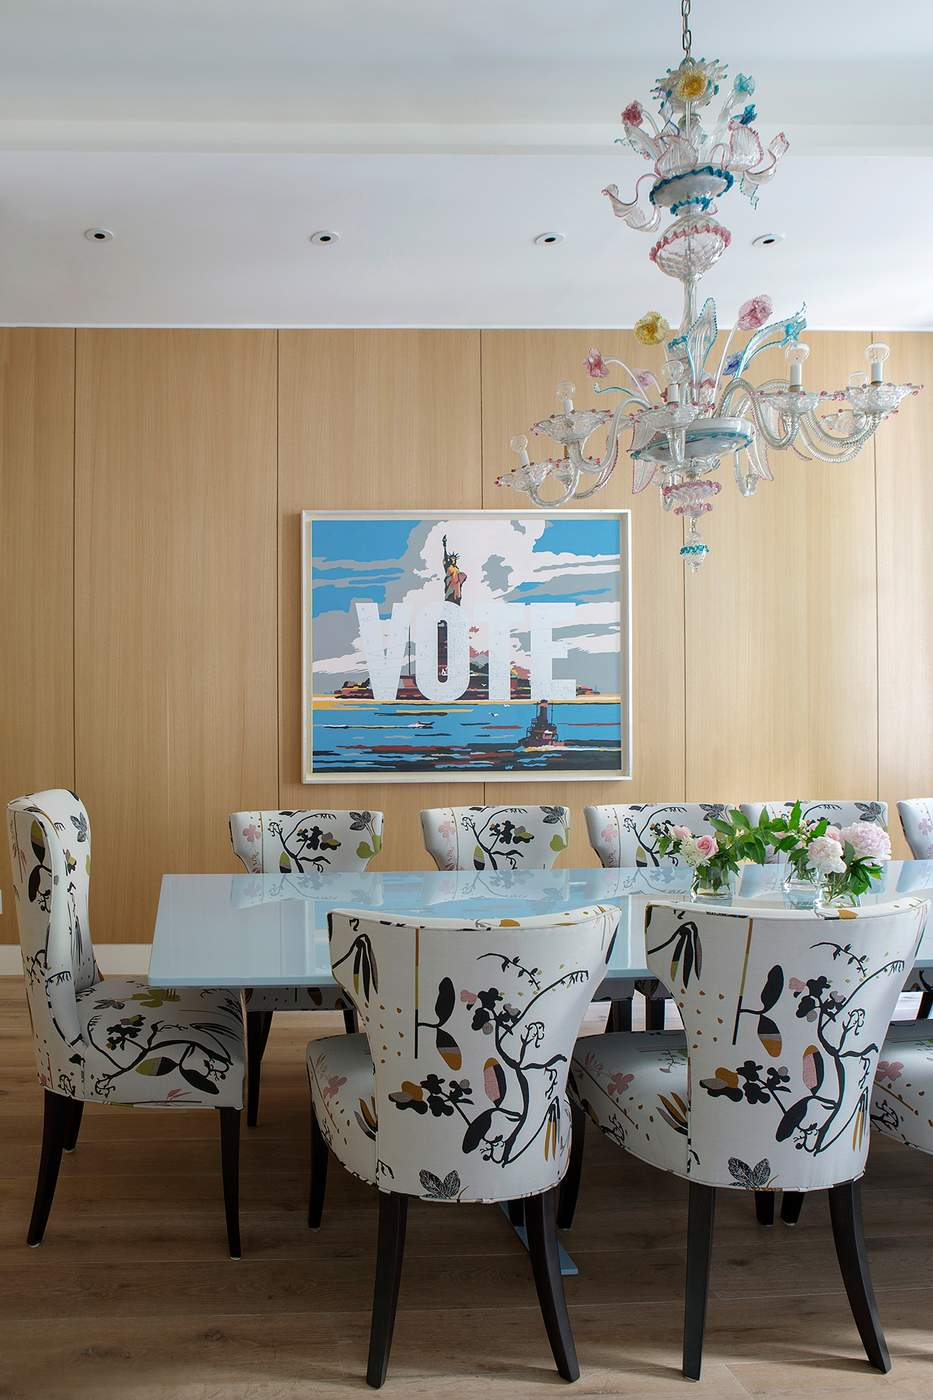 Dining room chairs decked in an abstract floral print lend a whimsical vibe to this room designed by the novogratz photography by costas picadas